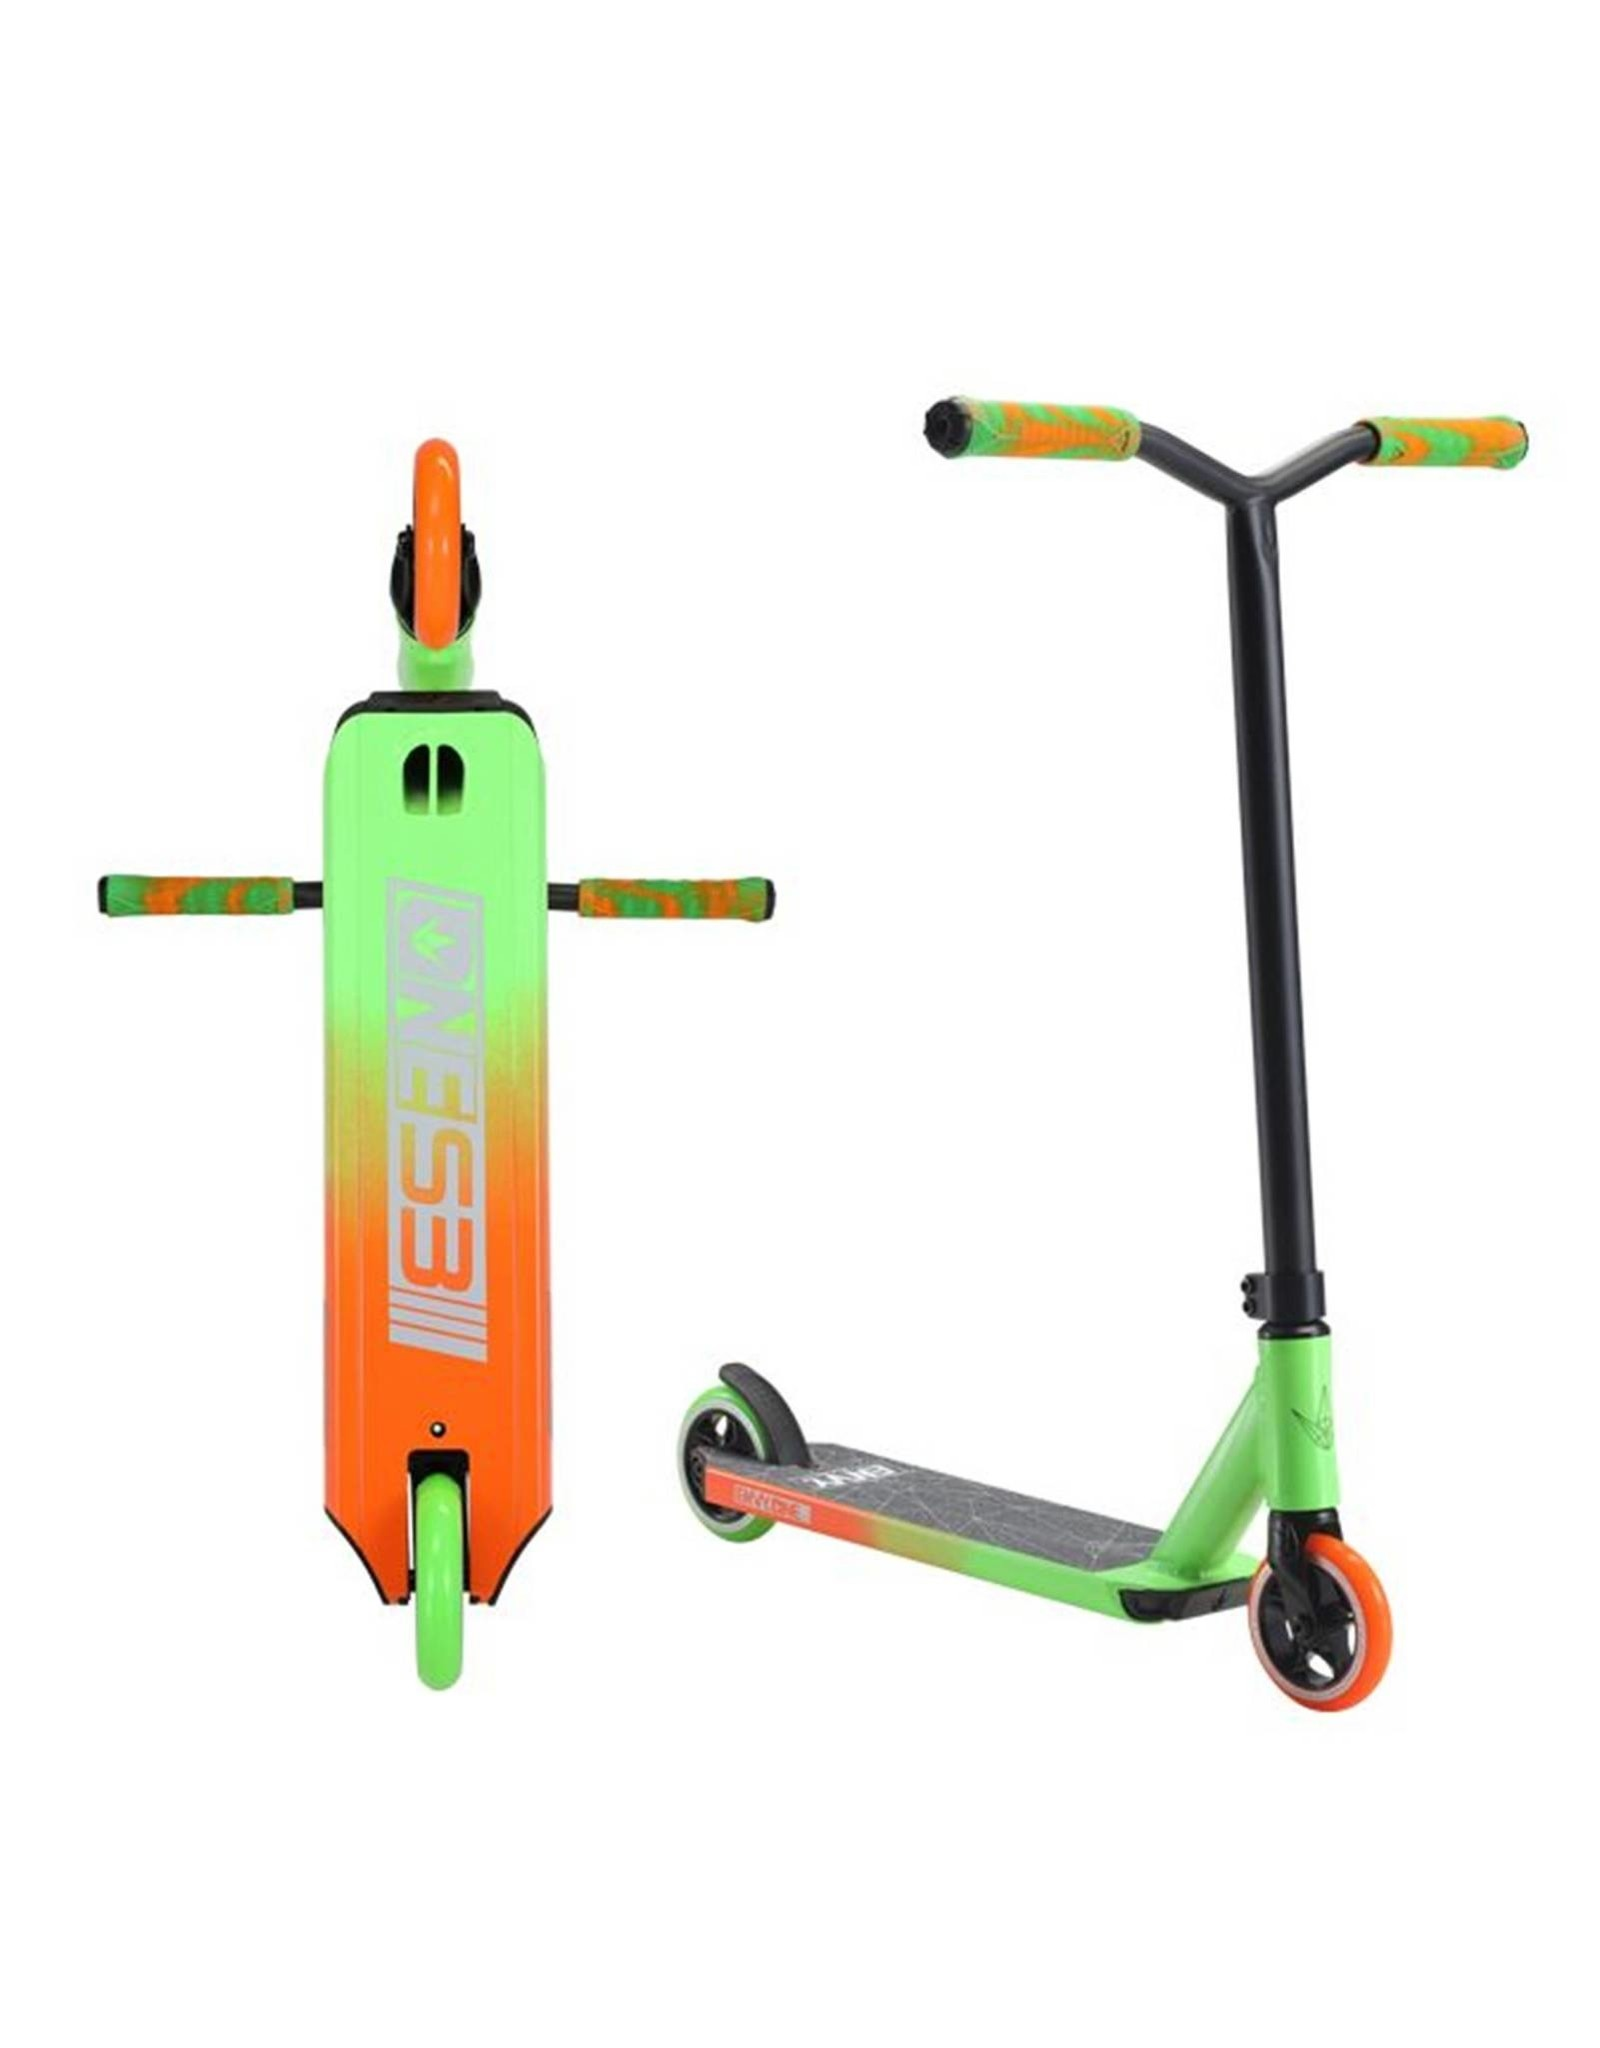 ENVY Envy One S3 Scooter Green/Orange